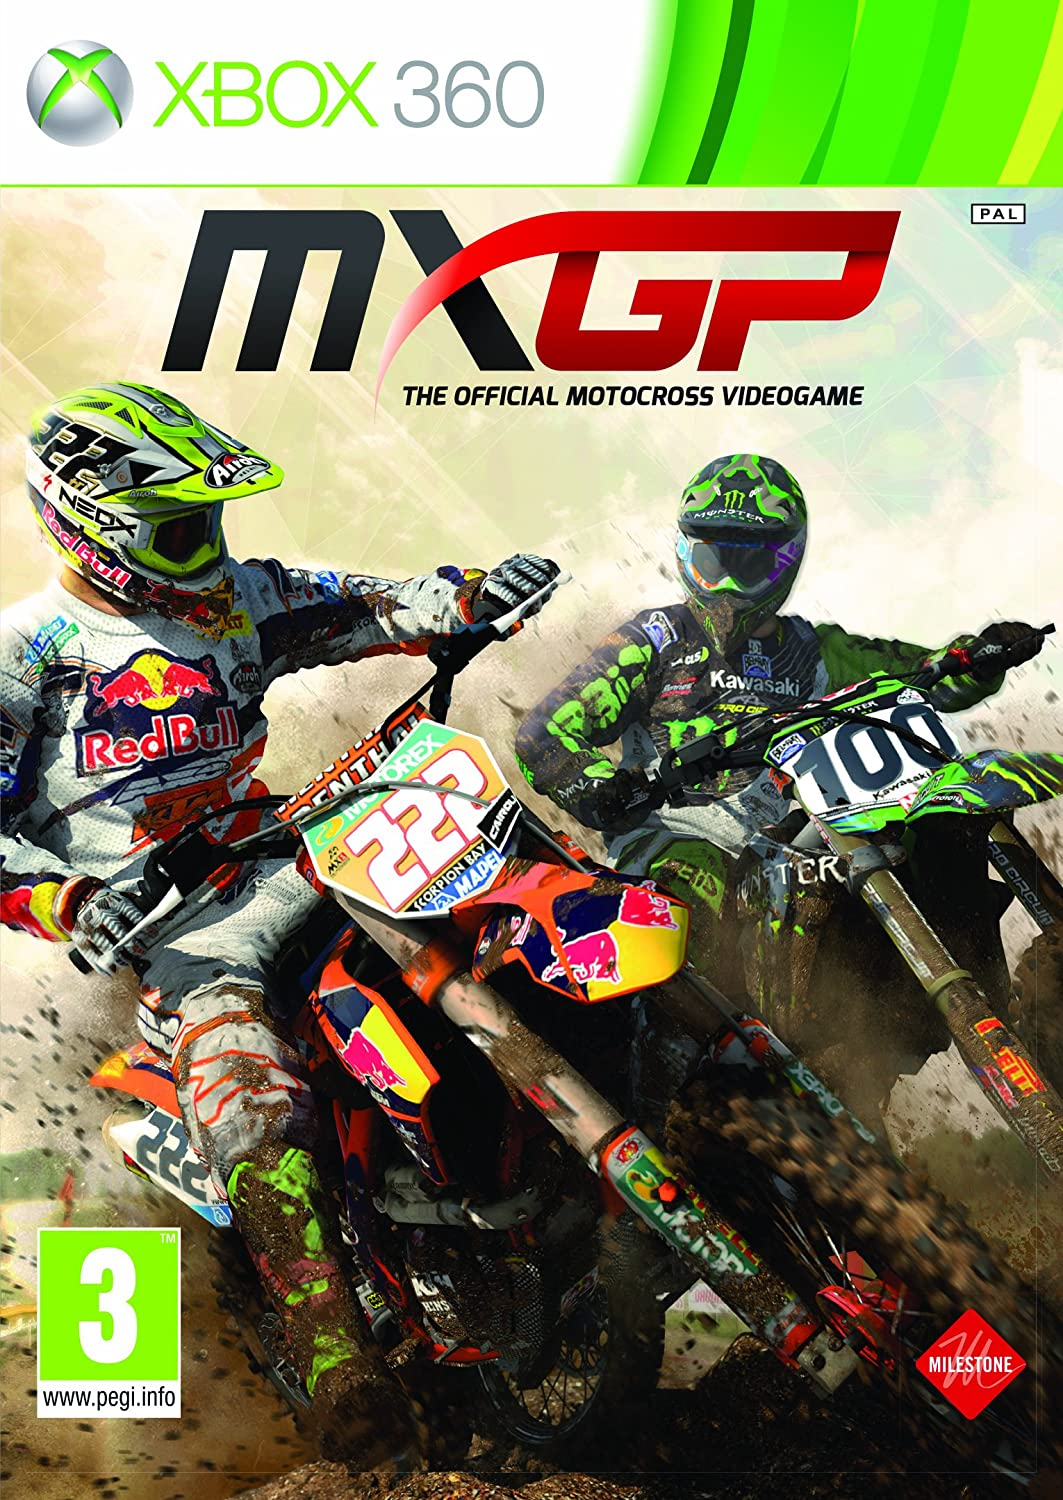 New Games For Xbox 360 New Xbox 360 Games Best British